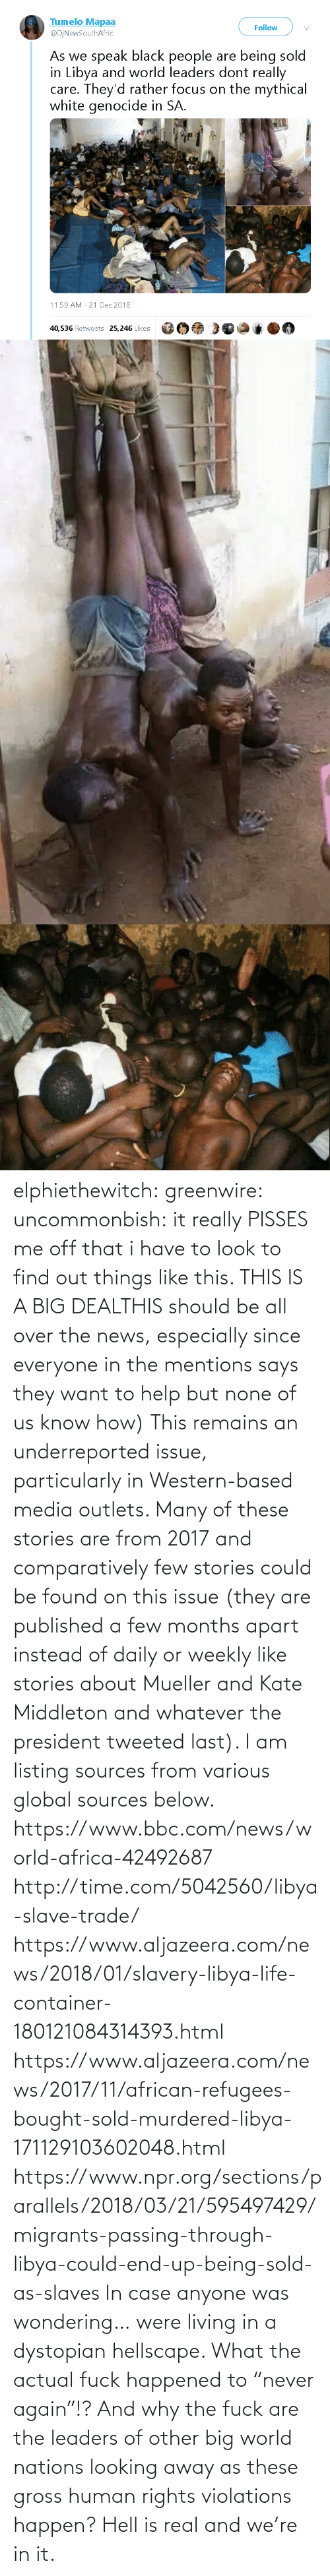 "deal: elphiethewitch: greenwire:  uncommonbish:  it really PISSES me off that i have to look to find out things like this. THIS IS A BIG DEALTHIS should be all over the news, especially since everyone in the mentions says they want to help but none of us know how)  This remains an underreported issue, particularly in Western-based media outlets. Many of these stories are from 2017 and comparatively few stories could be found on this issue (they are published a few months apart instead of daily or weekly like stories about Mueller and Kate Middleton and whatever the president tweeted last). I am listing sources from various global sources below.  https://www.bbc.com/news/world-africa-42492687 http://time.com/5042560/libya-slave-trade/ https://www.aljazeera.com/news/2018/01/slavery-libya-life-container-180121084314393.html https://www.aljazeera.com/news/2017/11/african-refugees-bought-sold-murdered-libya-171129103602048.html https://www.npr.org/sections/parallels/2018/03/21/595497429/migrants-passing-through-libya-could-end-up-being-sold-as-slaves   In case anyone was wondering… were living in a dystopian hellscape.  What the actual fuck happened to ""never again""!? And why the fuck are the leaders of other big world nations looking away as these gross human rights violations happen?  Hell is real and we're in it."